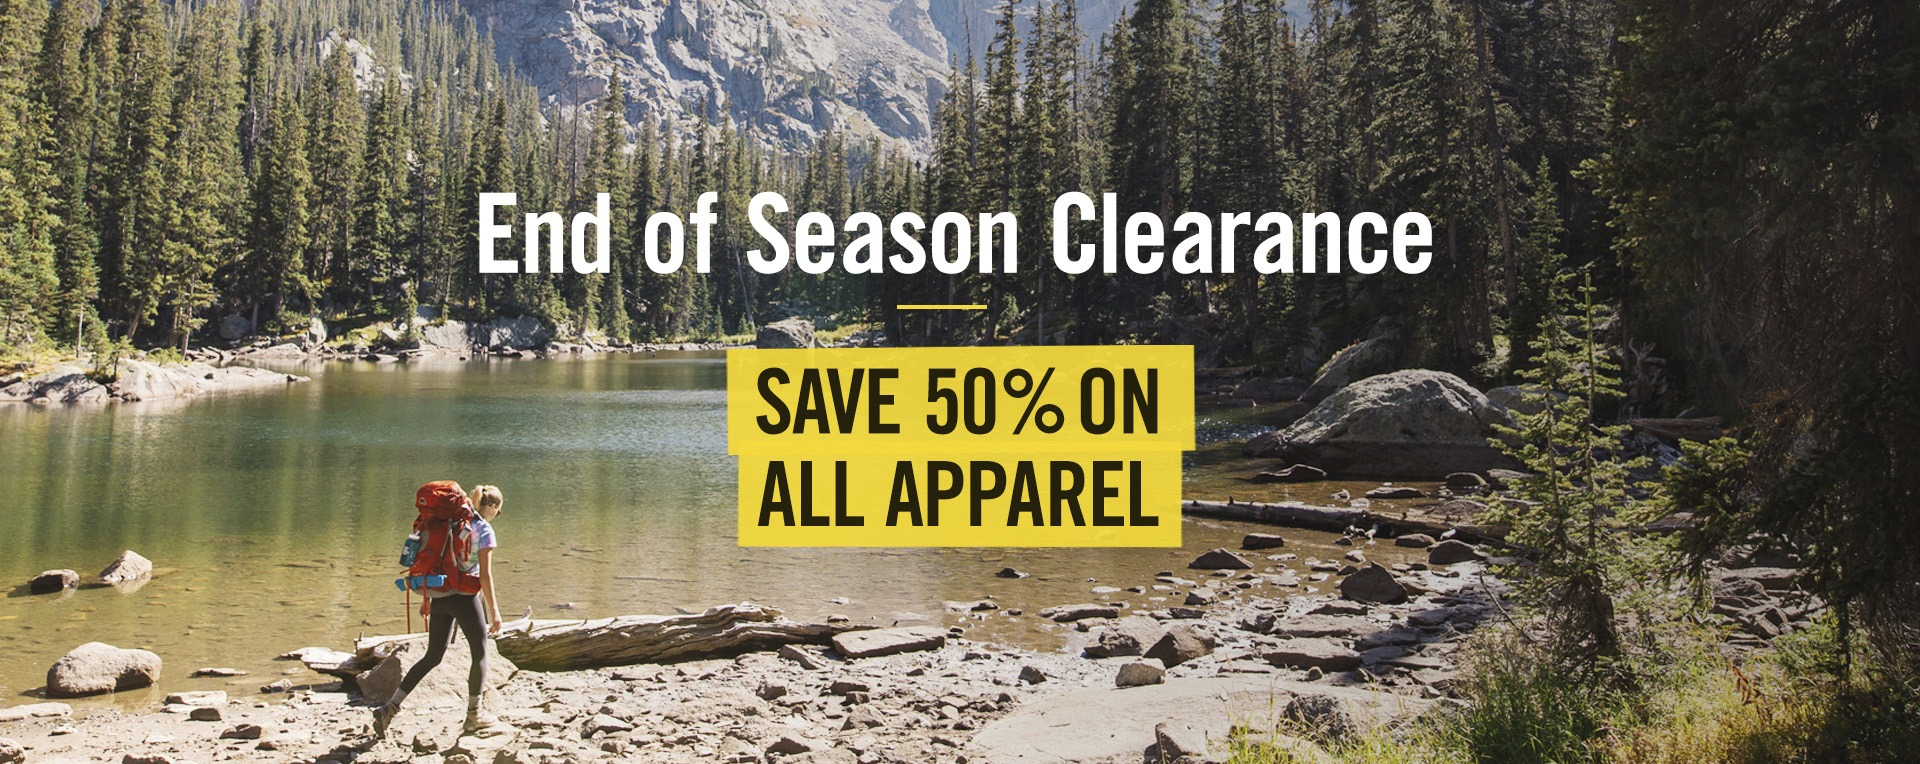 Save 50% on All Apparel!